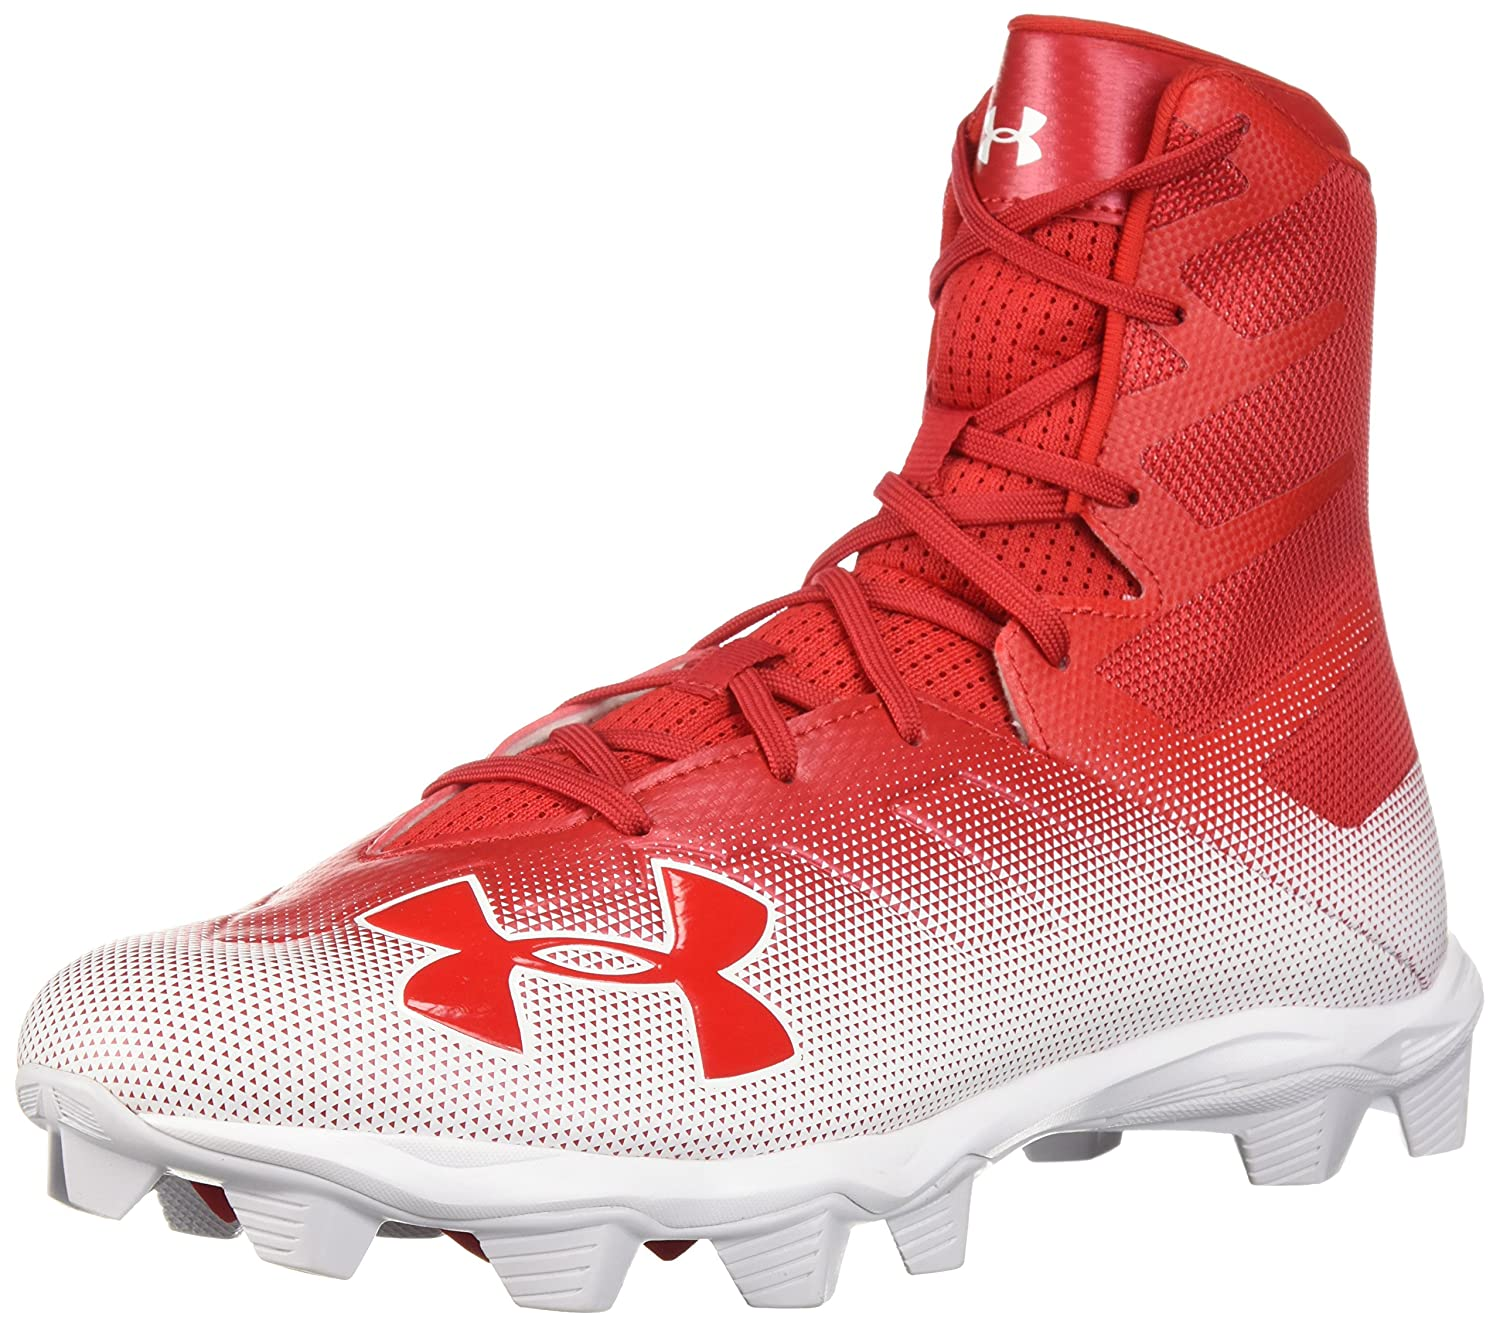 Under Armour メンズ 3000183 B071Z92F66 7.5 D(M) US|Red (600)/White Red (600)/White 7.5 D(M) US